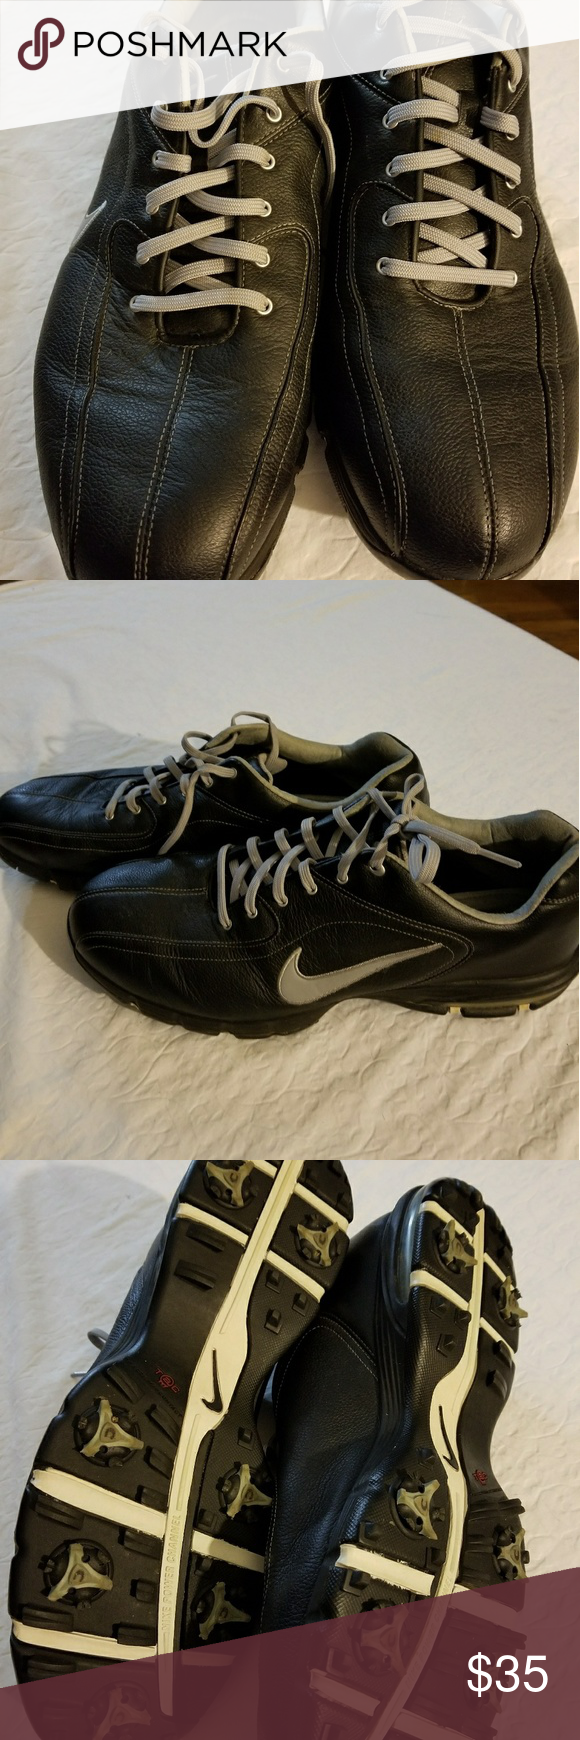 b467e6b5df Nike Air Max Revive Golf Shoes Size 13. Exceptionally lightweight and  waterproof. Leather upper shoes. This item may have been worn but has no  visible signs ...